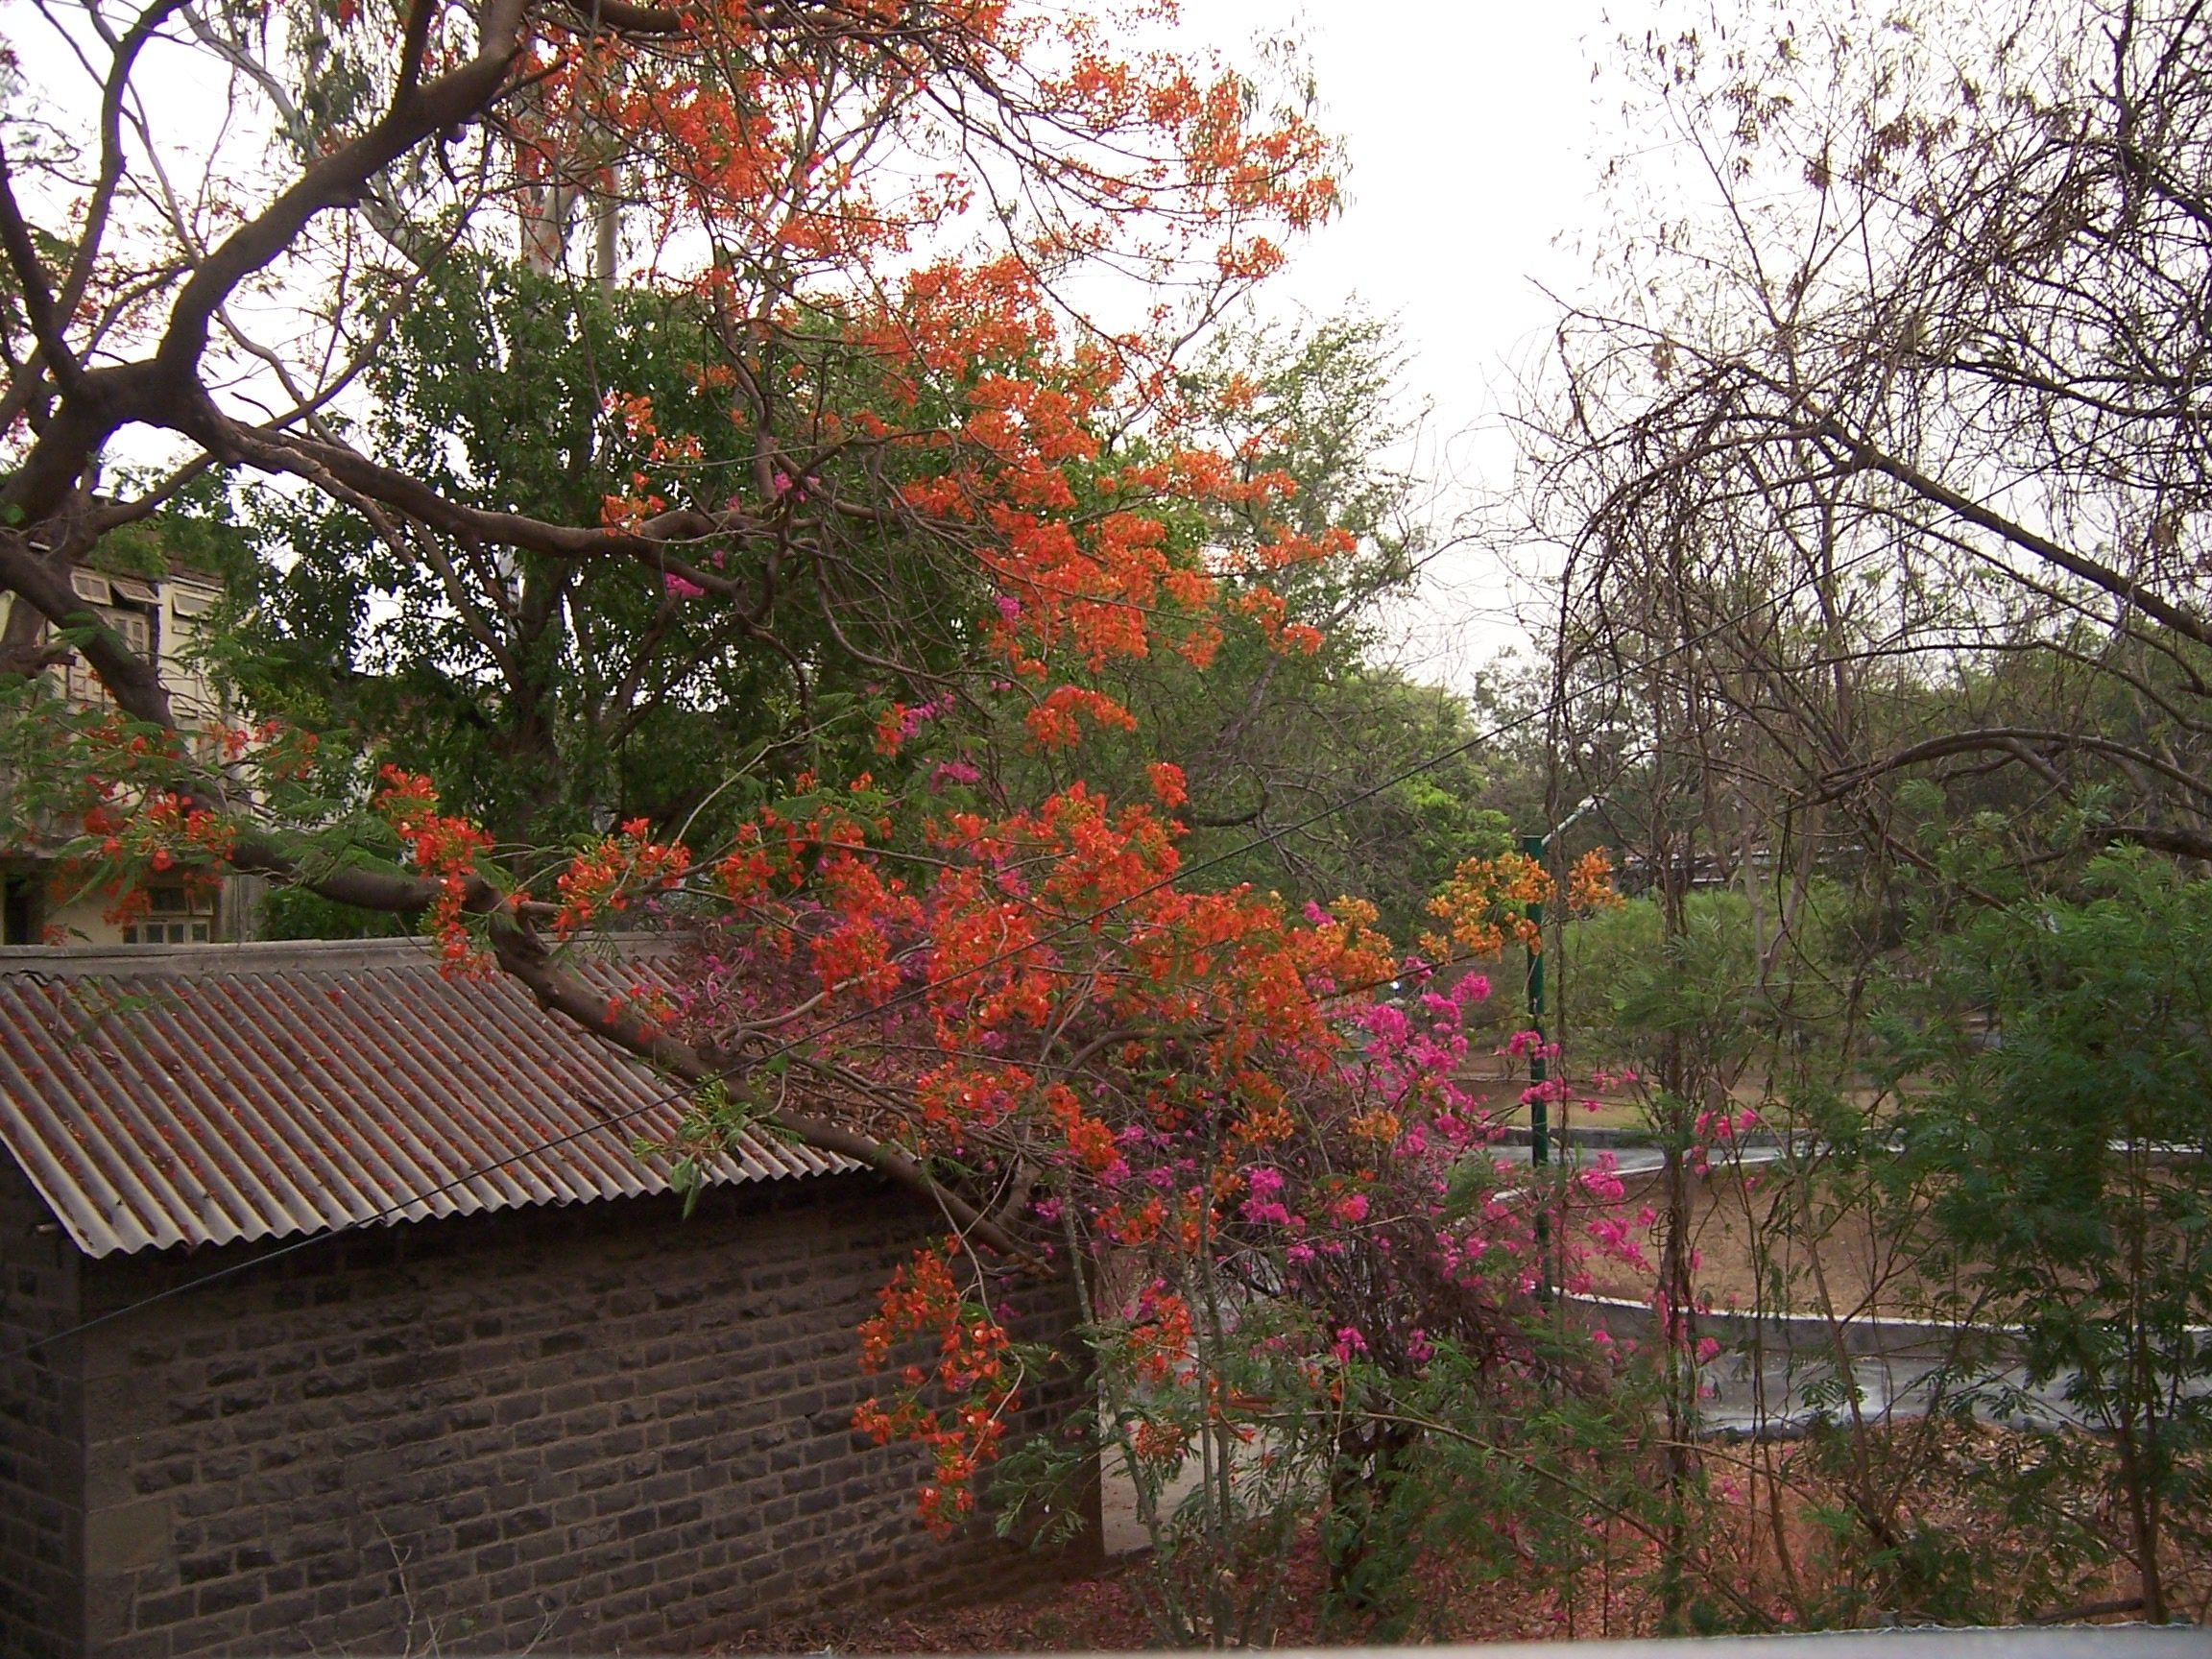 Orange-red gulmohar flowers.